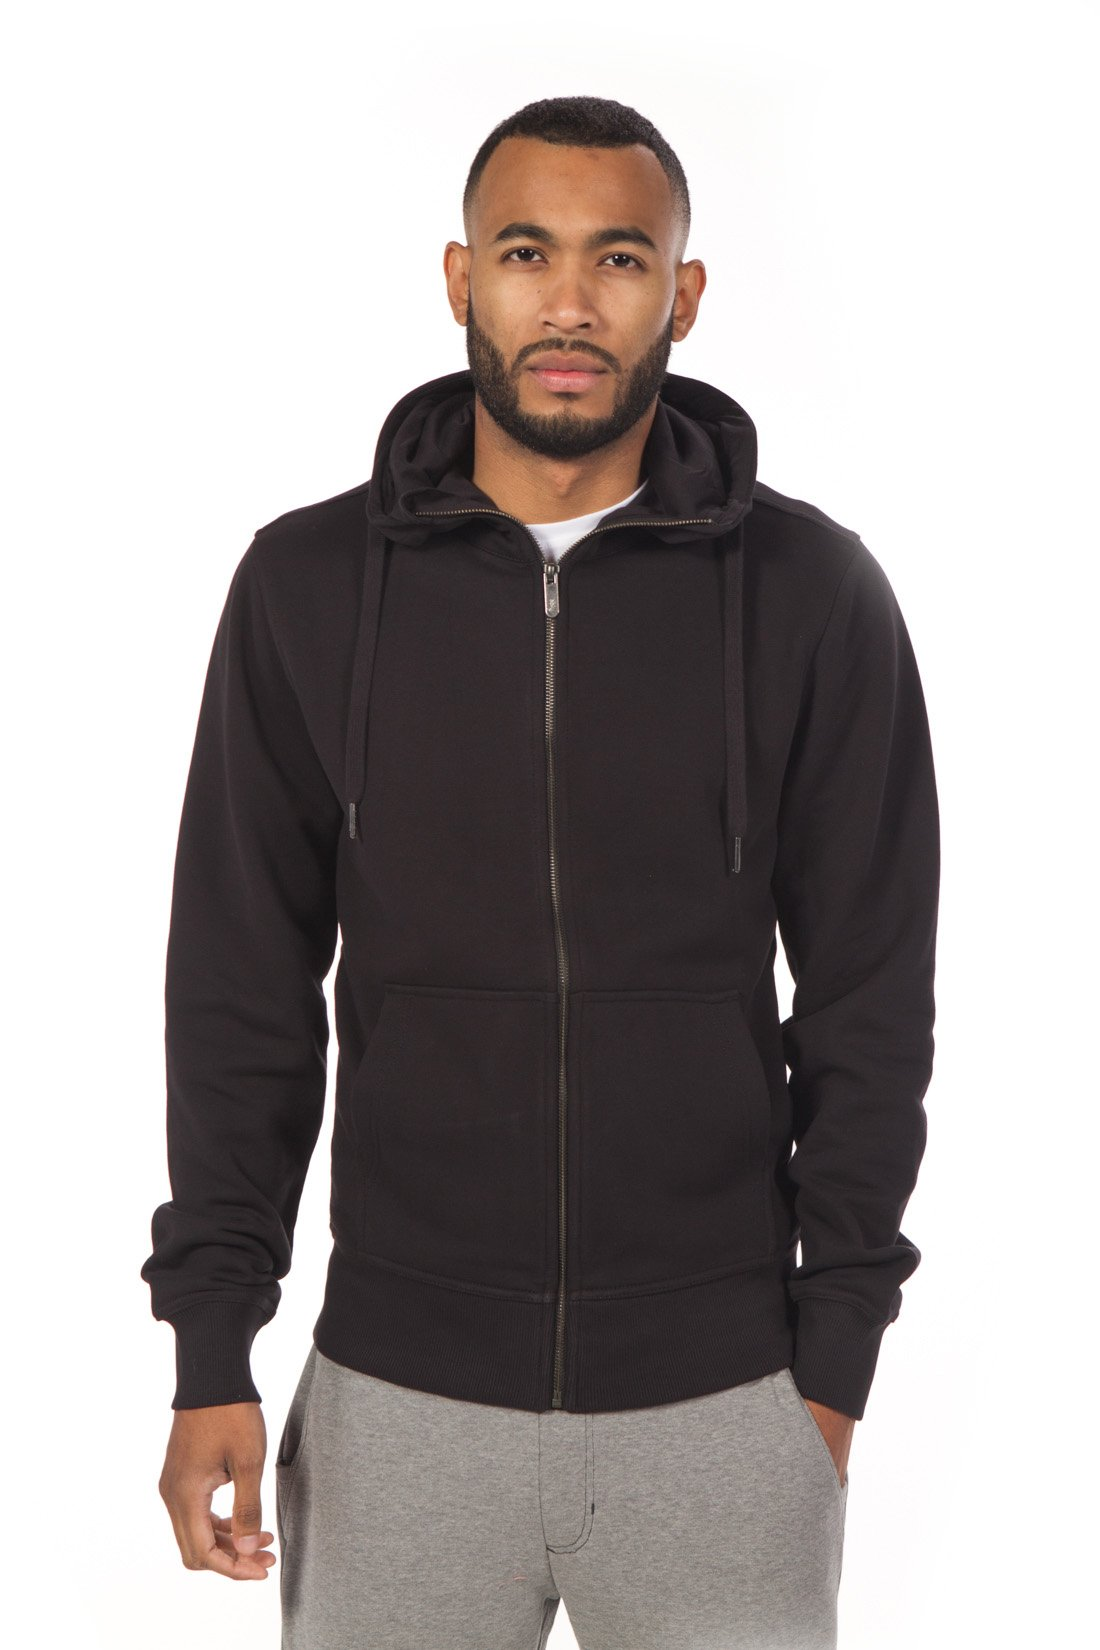 Ably Apparel Robert (Large, Black)